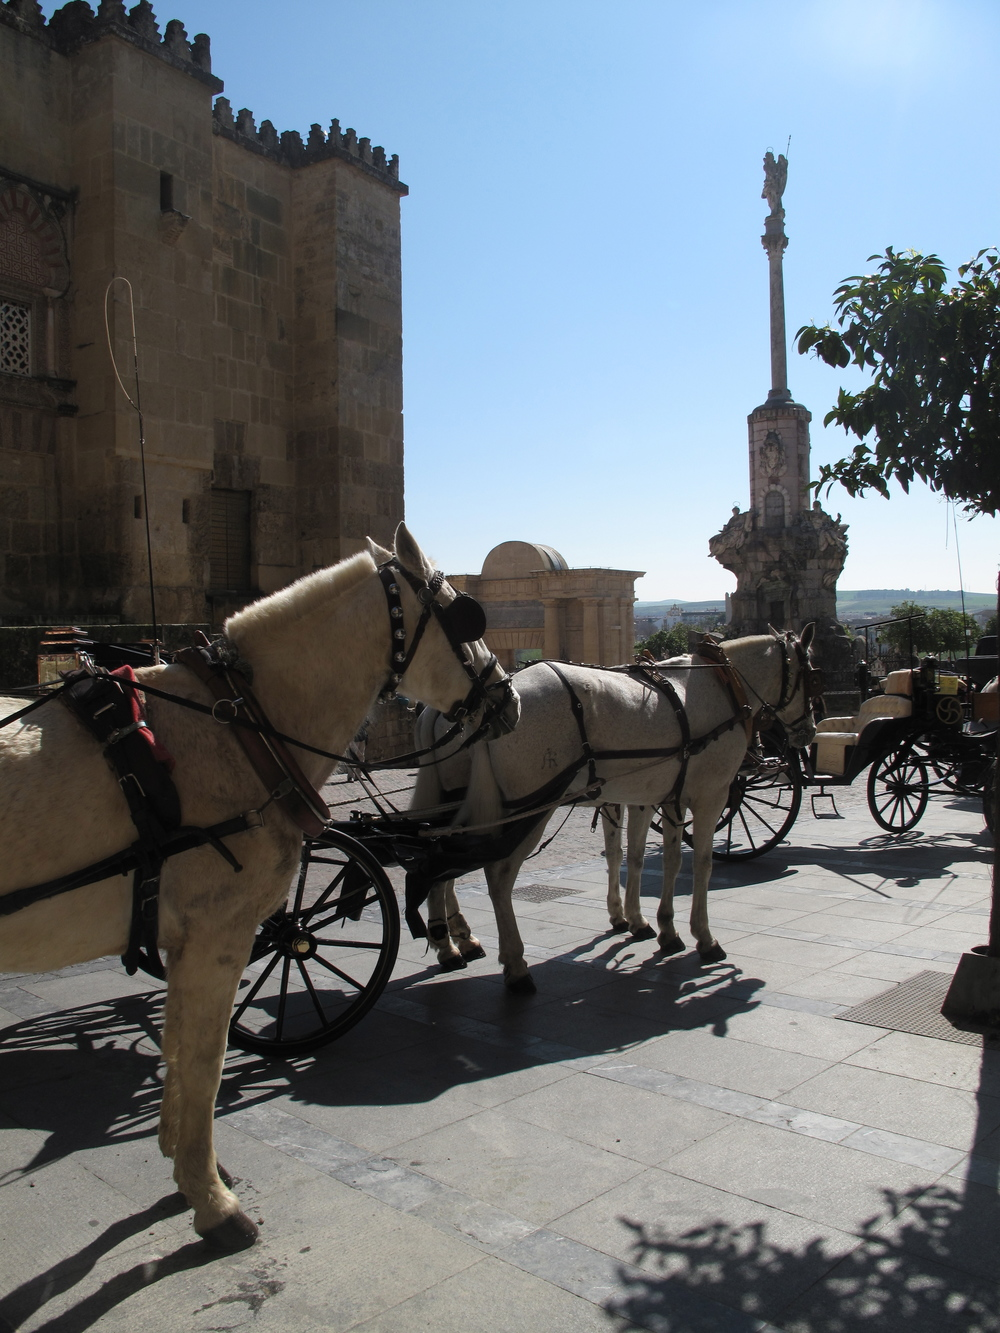 Horses and carriages in Spain